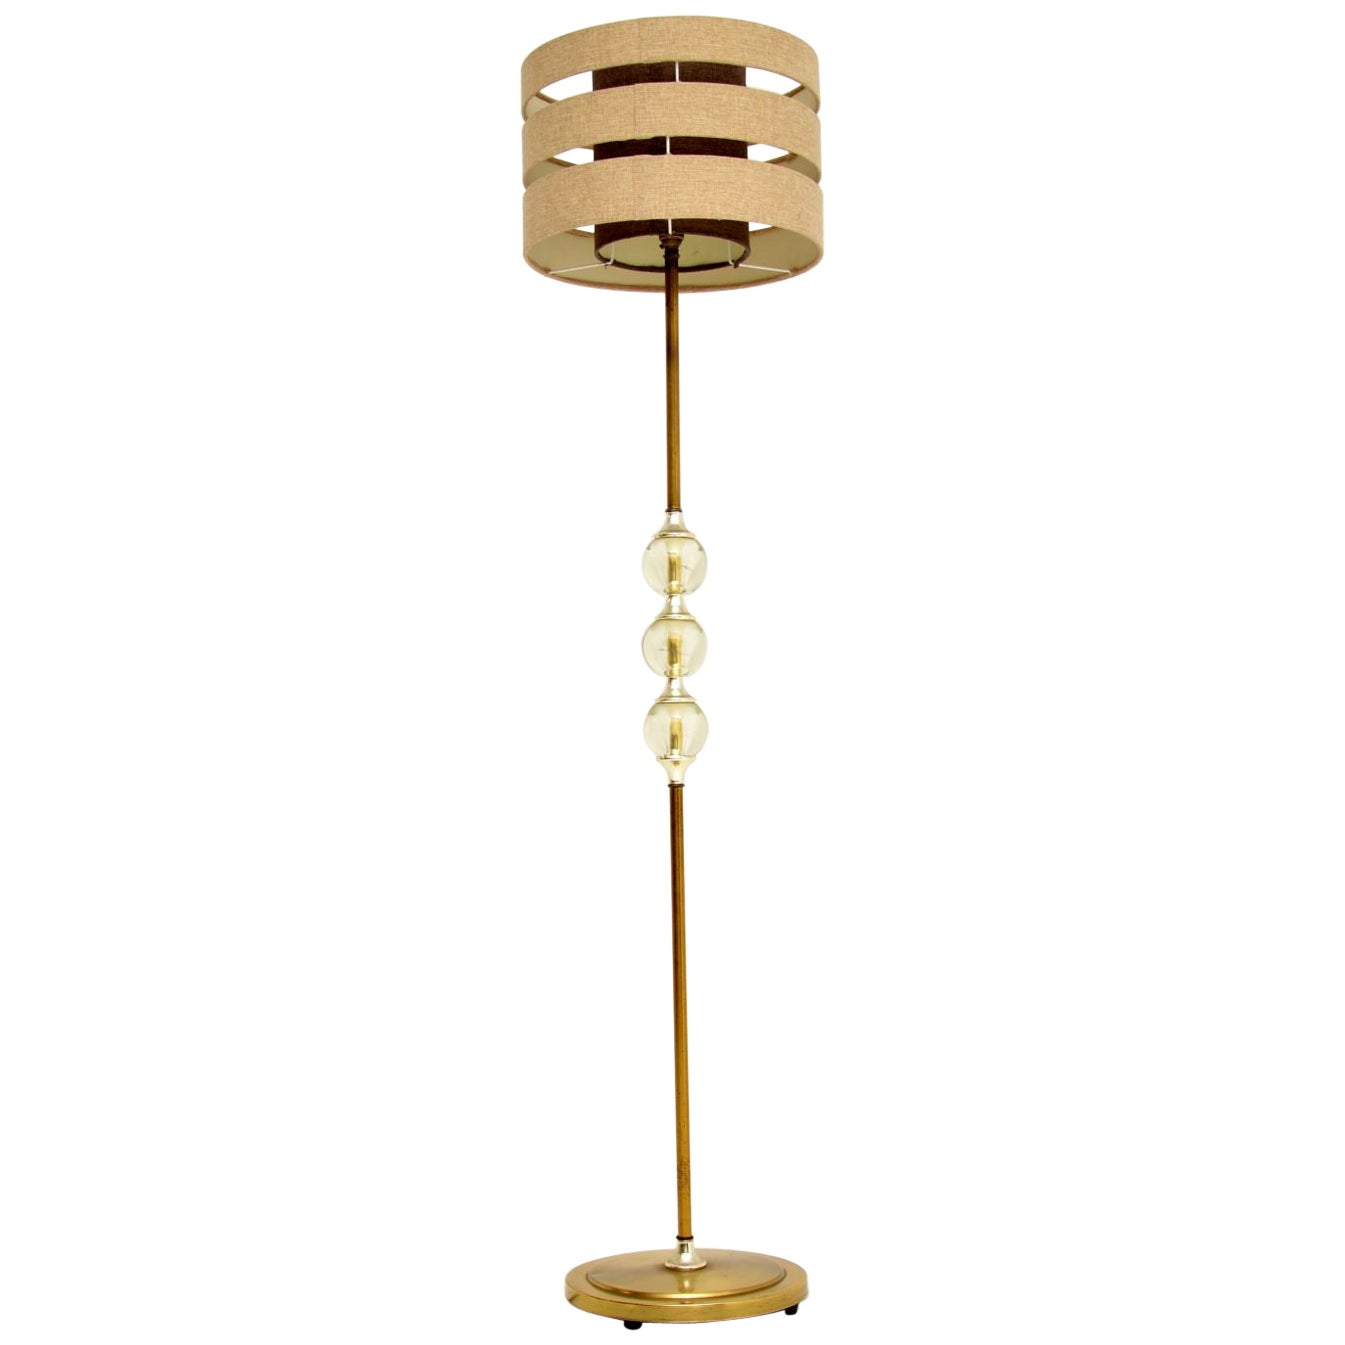 1960s Vintage Brass and Acrylic Floor Lamp